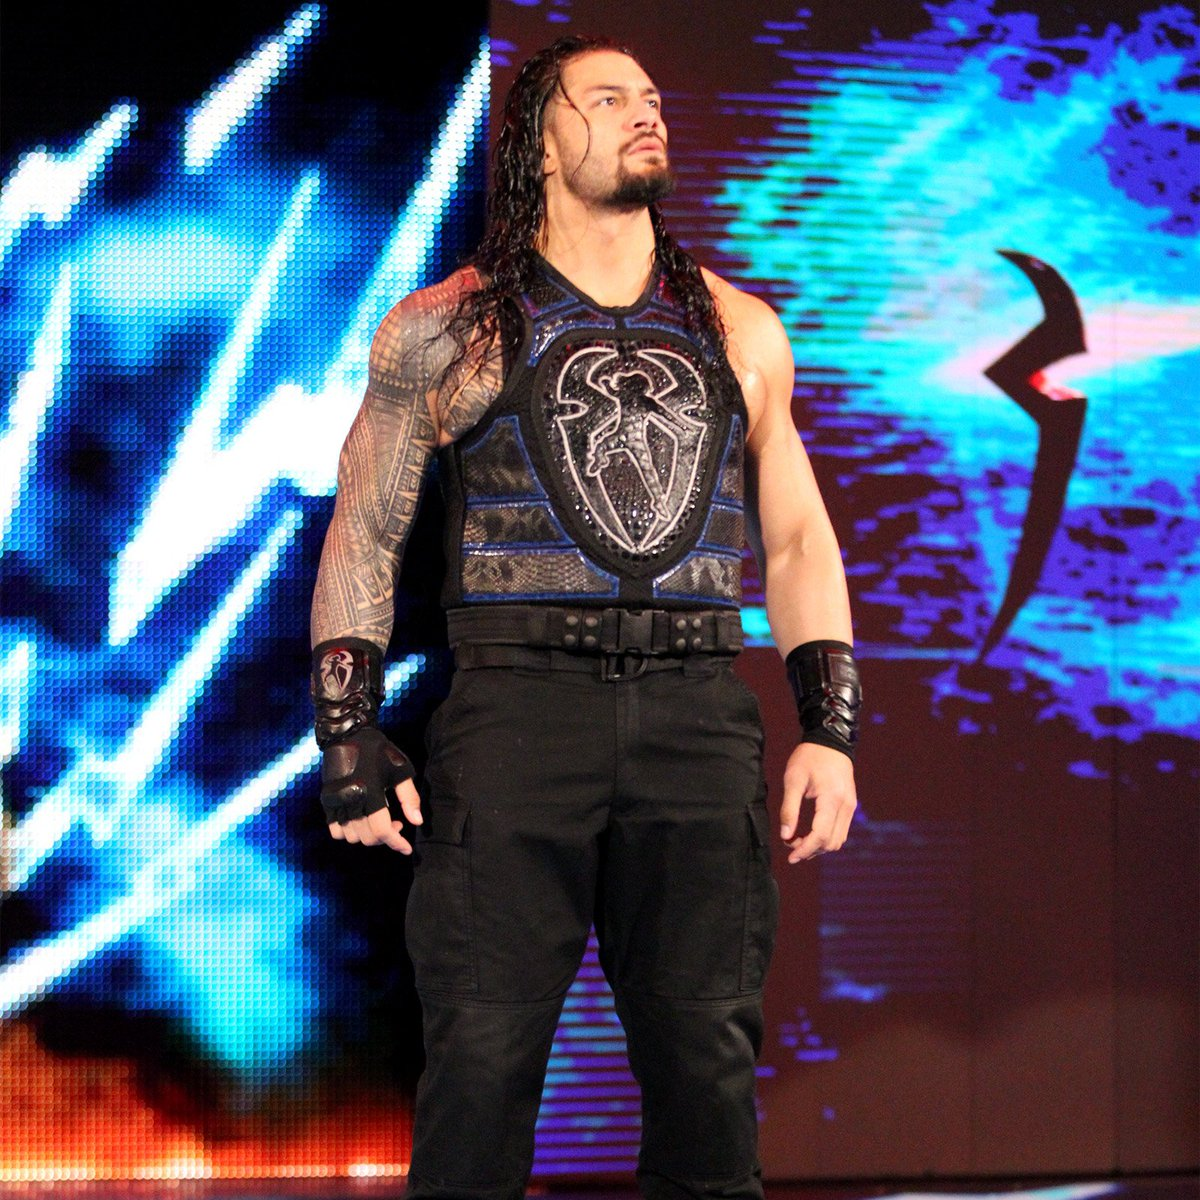 @BRWrestling's photo on Reigns